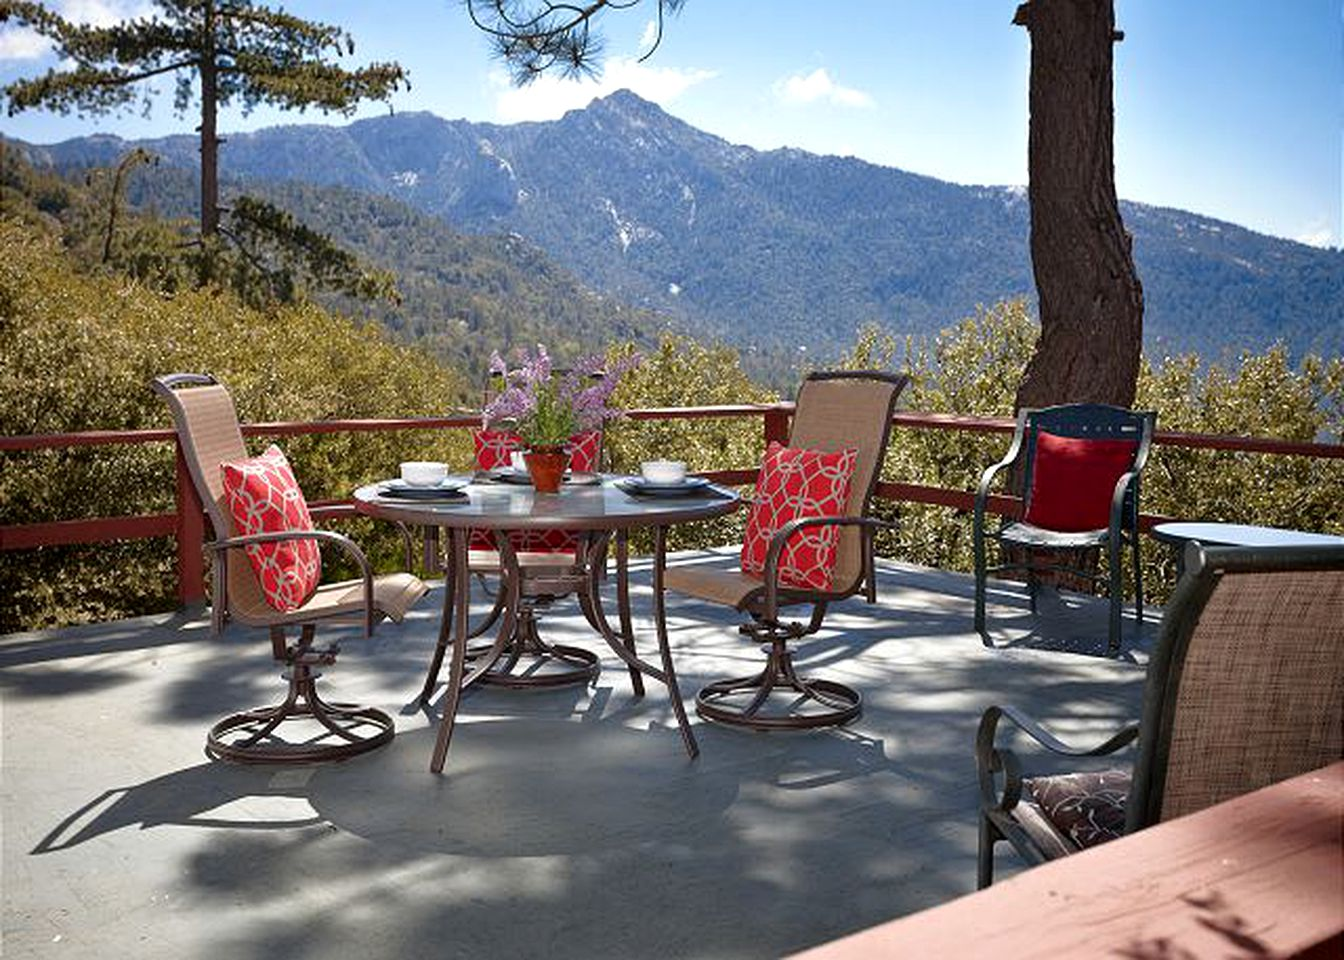 Cabin rental in the San Jacinto Mountains in Idyllwild, California.